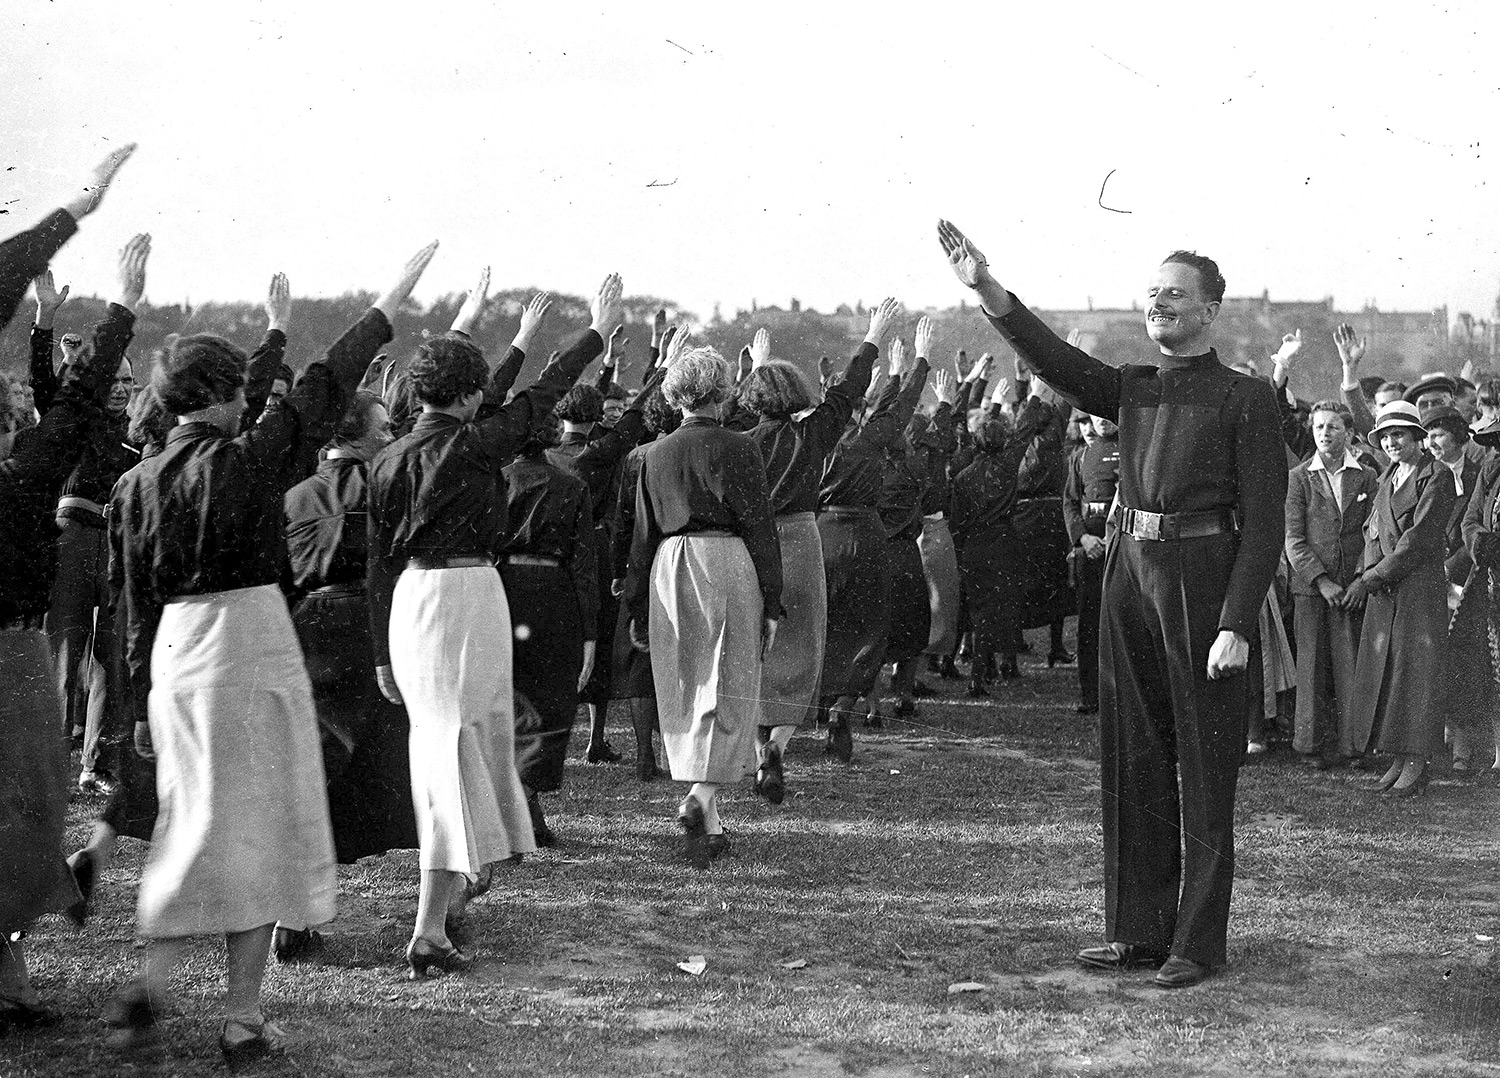 Mosley takes the salute of women members of the Blackshirts, Hyde Park, September 9th, 1934